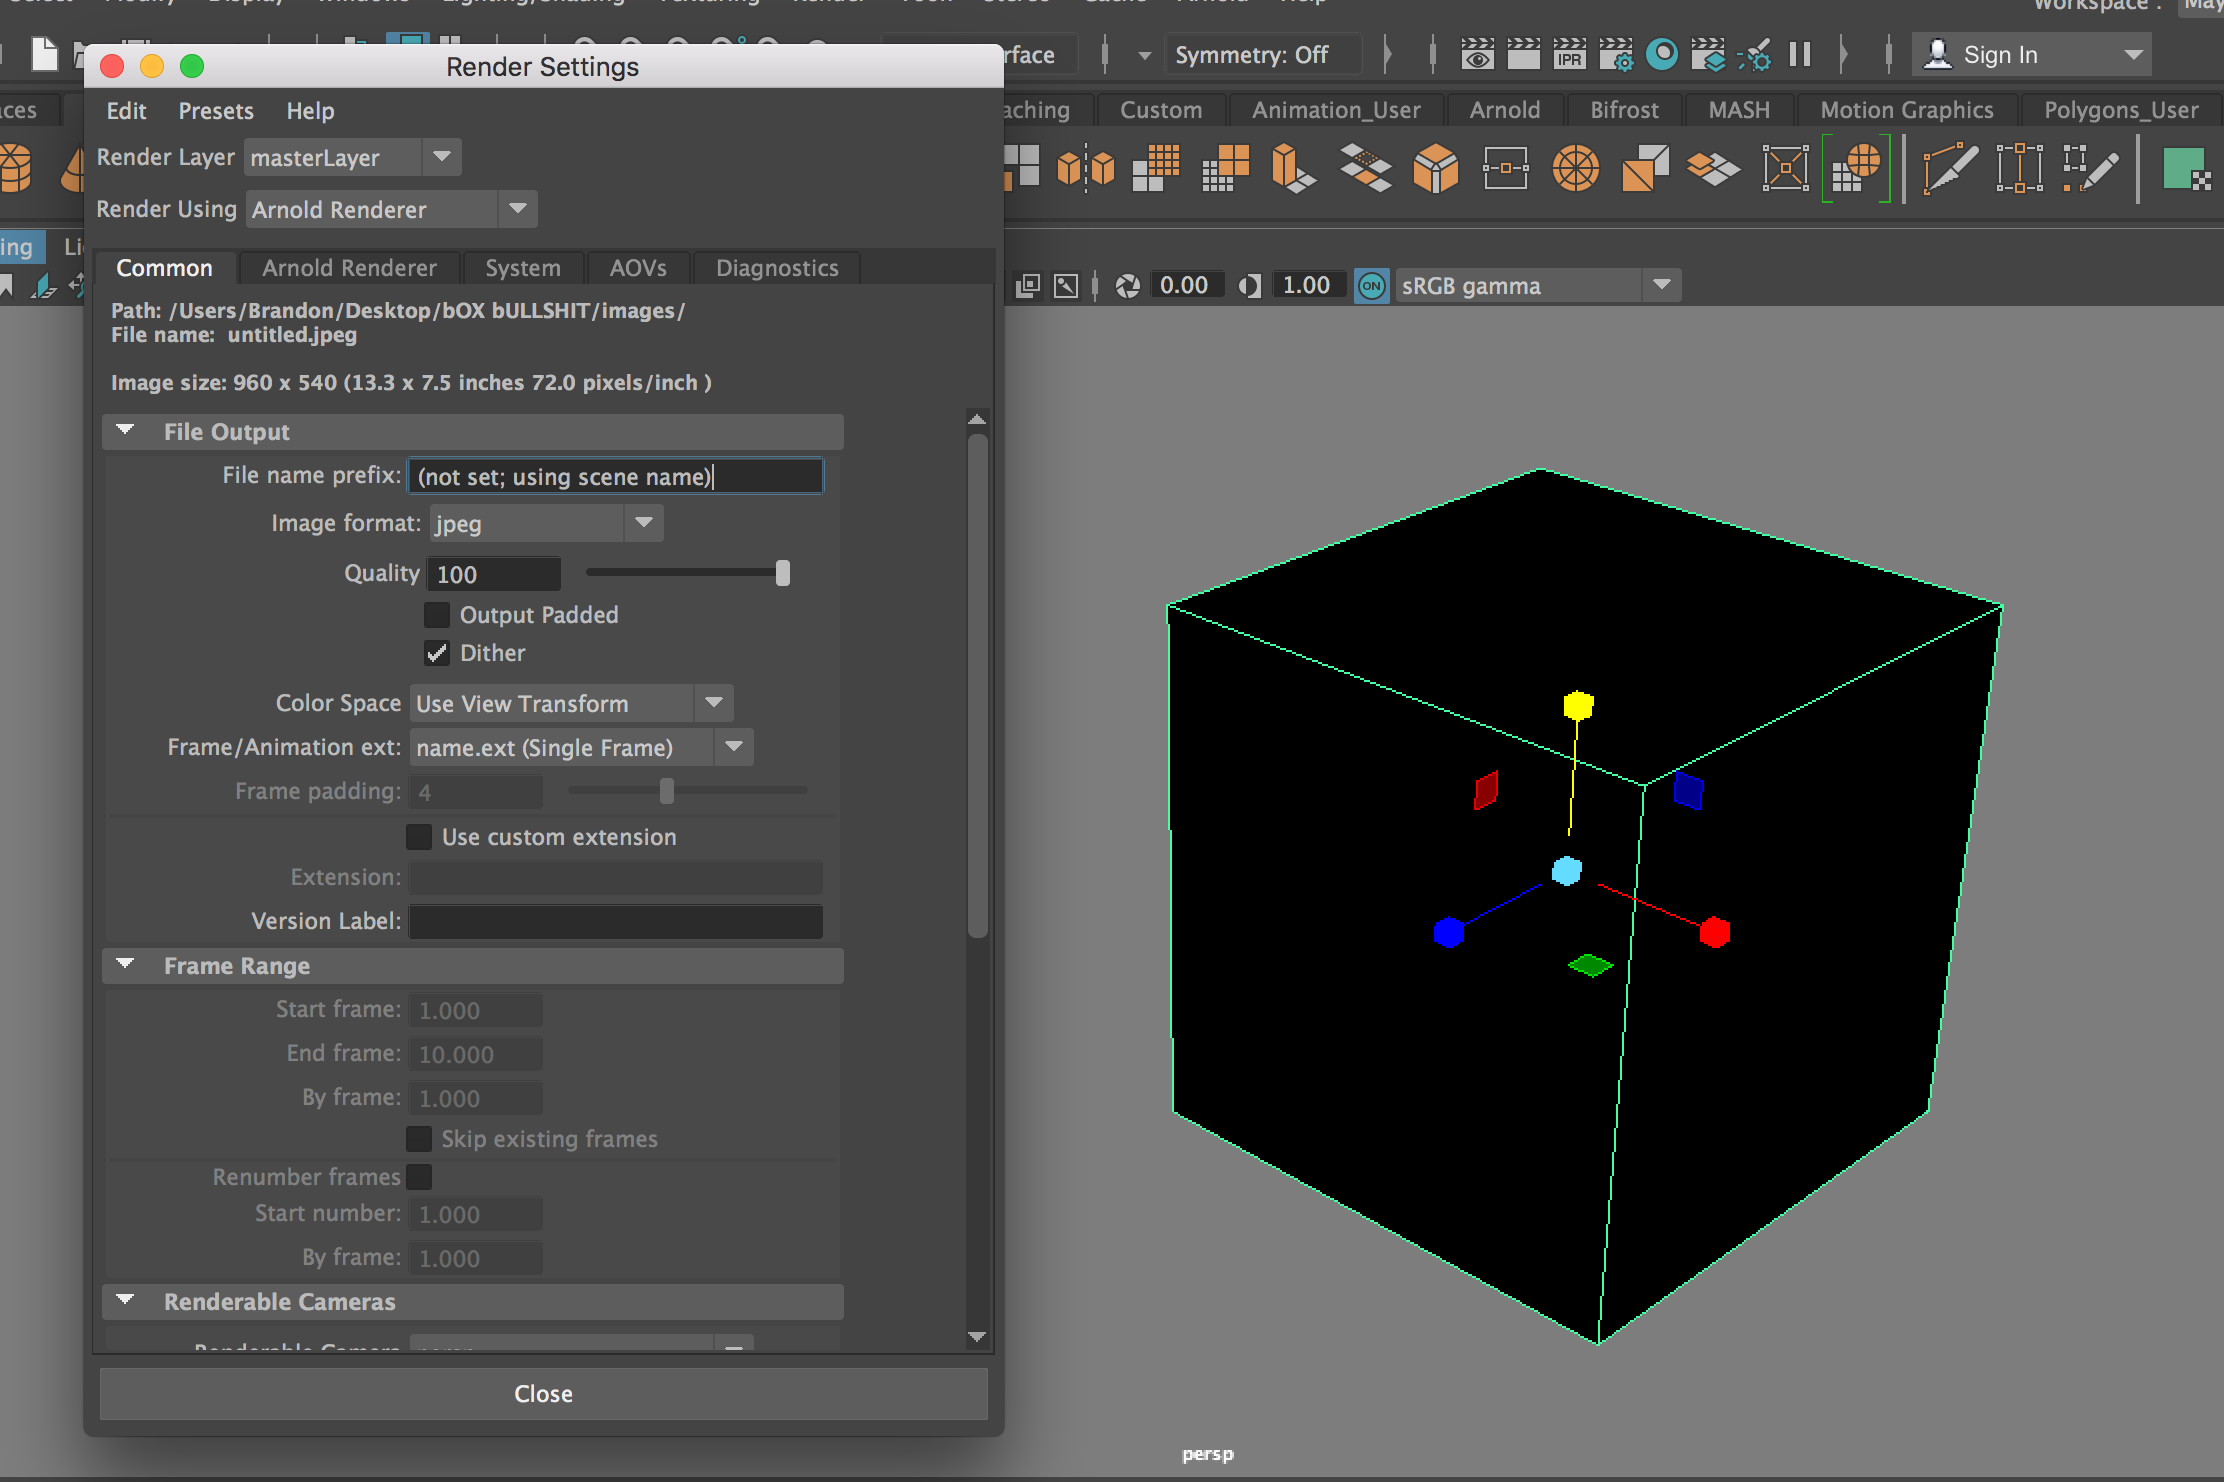 Arnold Render Sequence NOT WORKING! - Autodesk Community- Maya